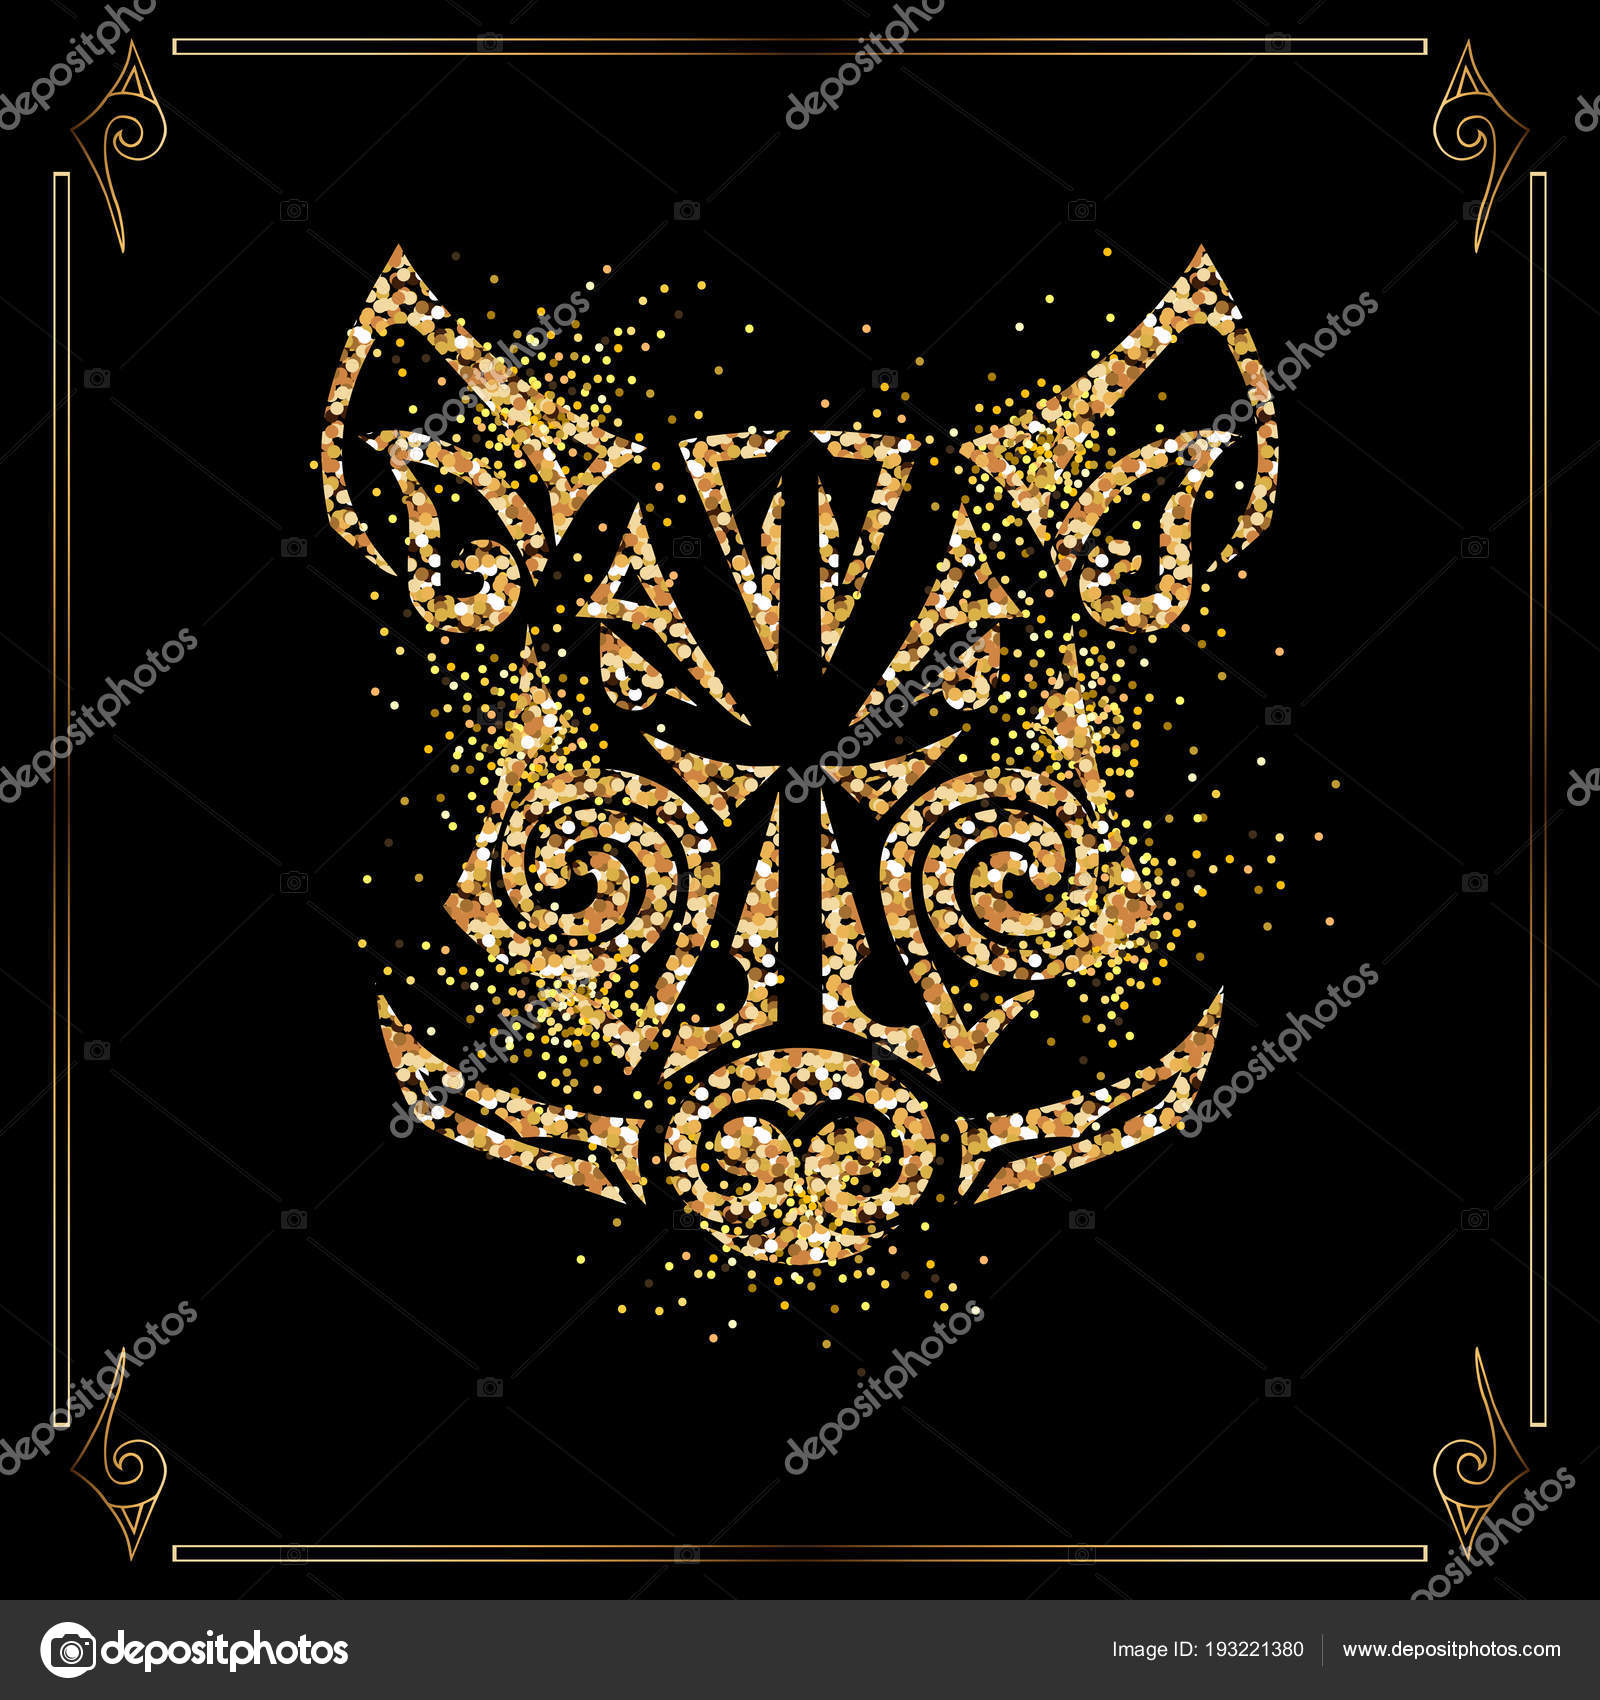 Golden Boar Pig Head Isolated Black Background Symbol Chinese 2019